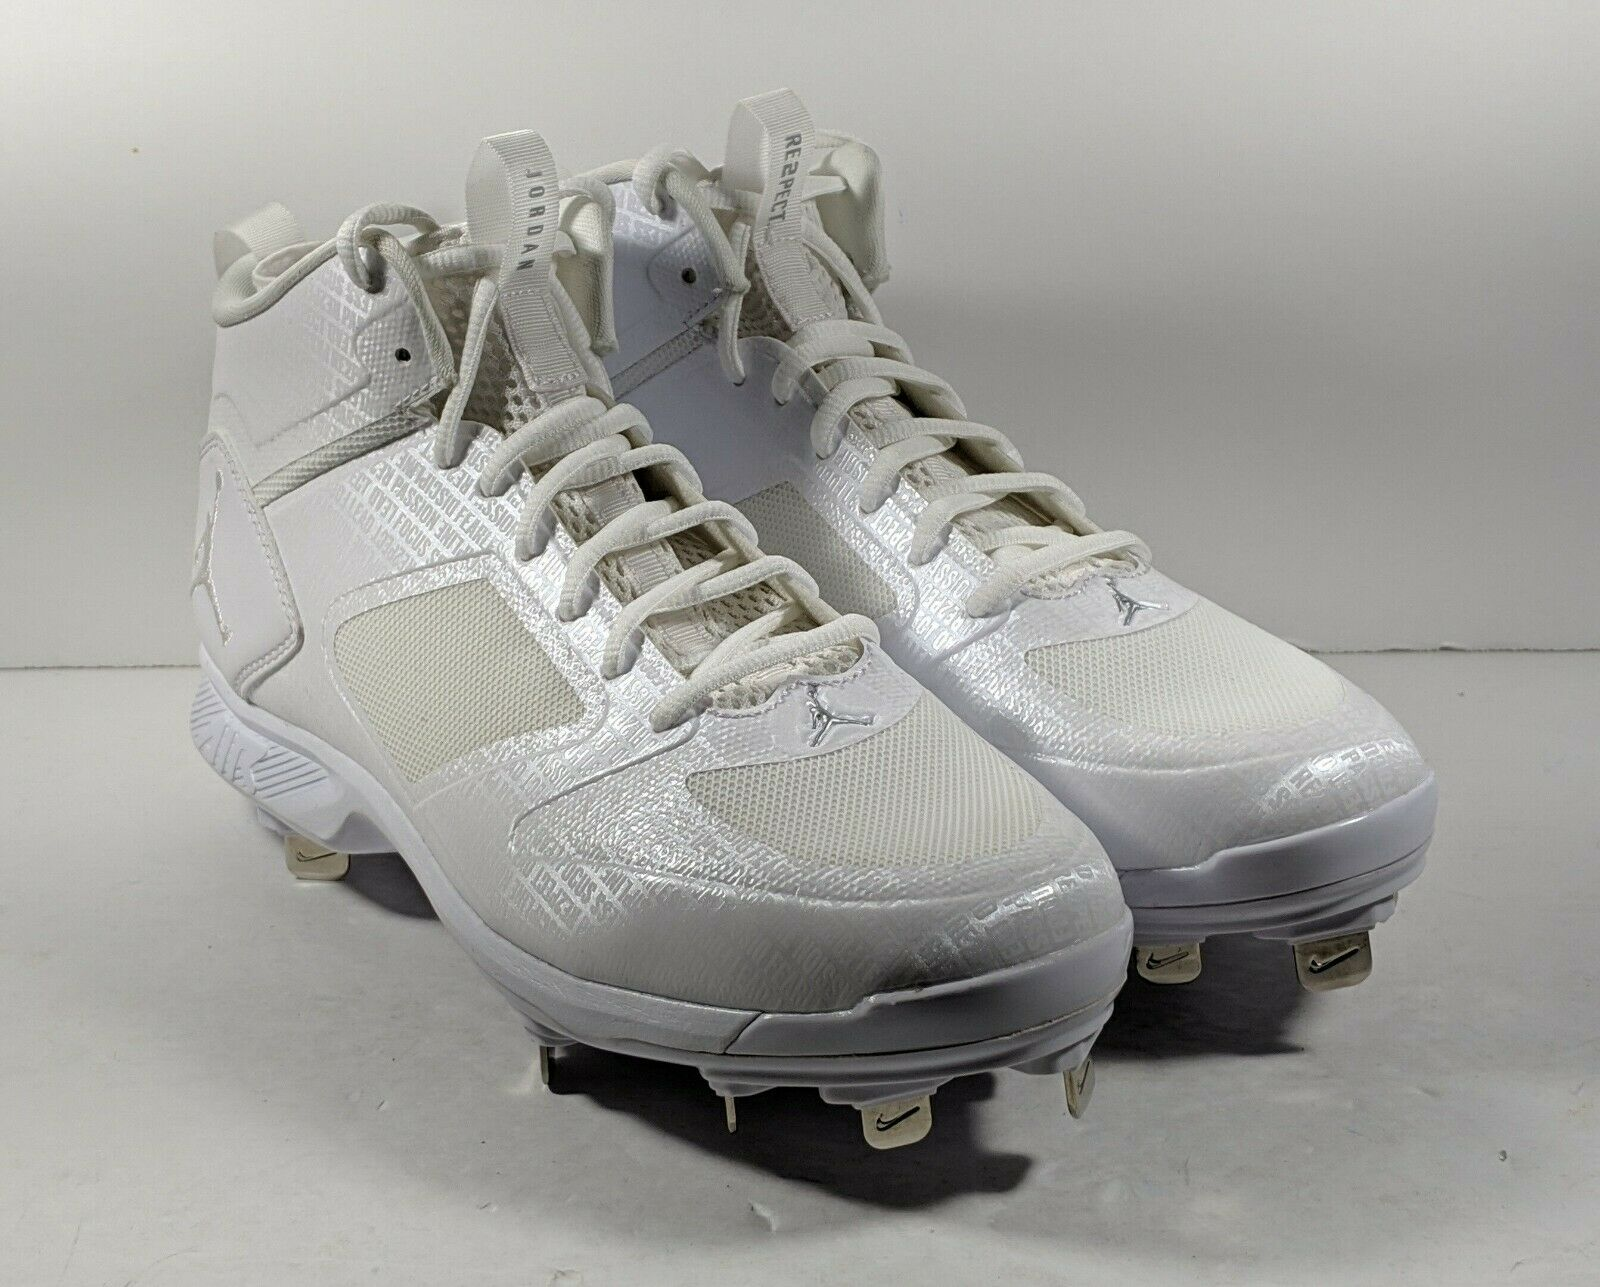 NEW Air Jordan Jeter Clutch Lux Metal Baseball Cleat White AO2914-102 Size 9